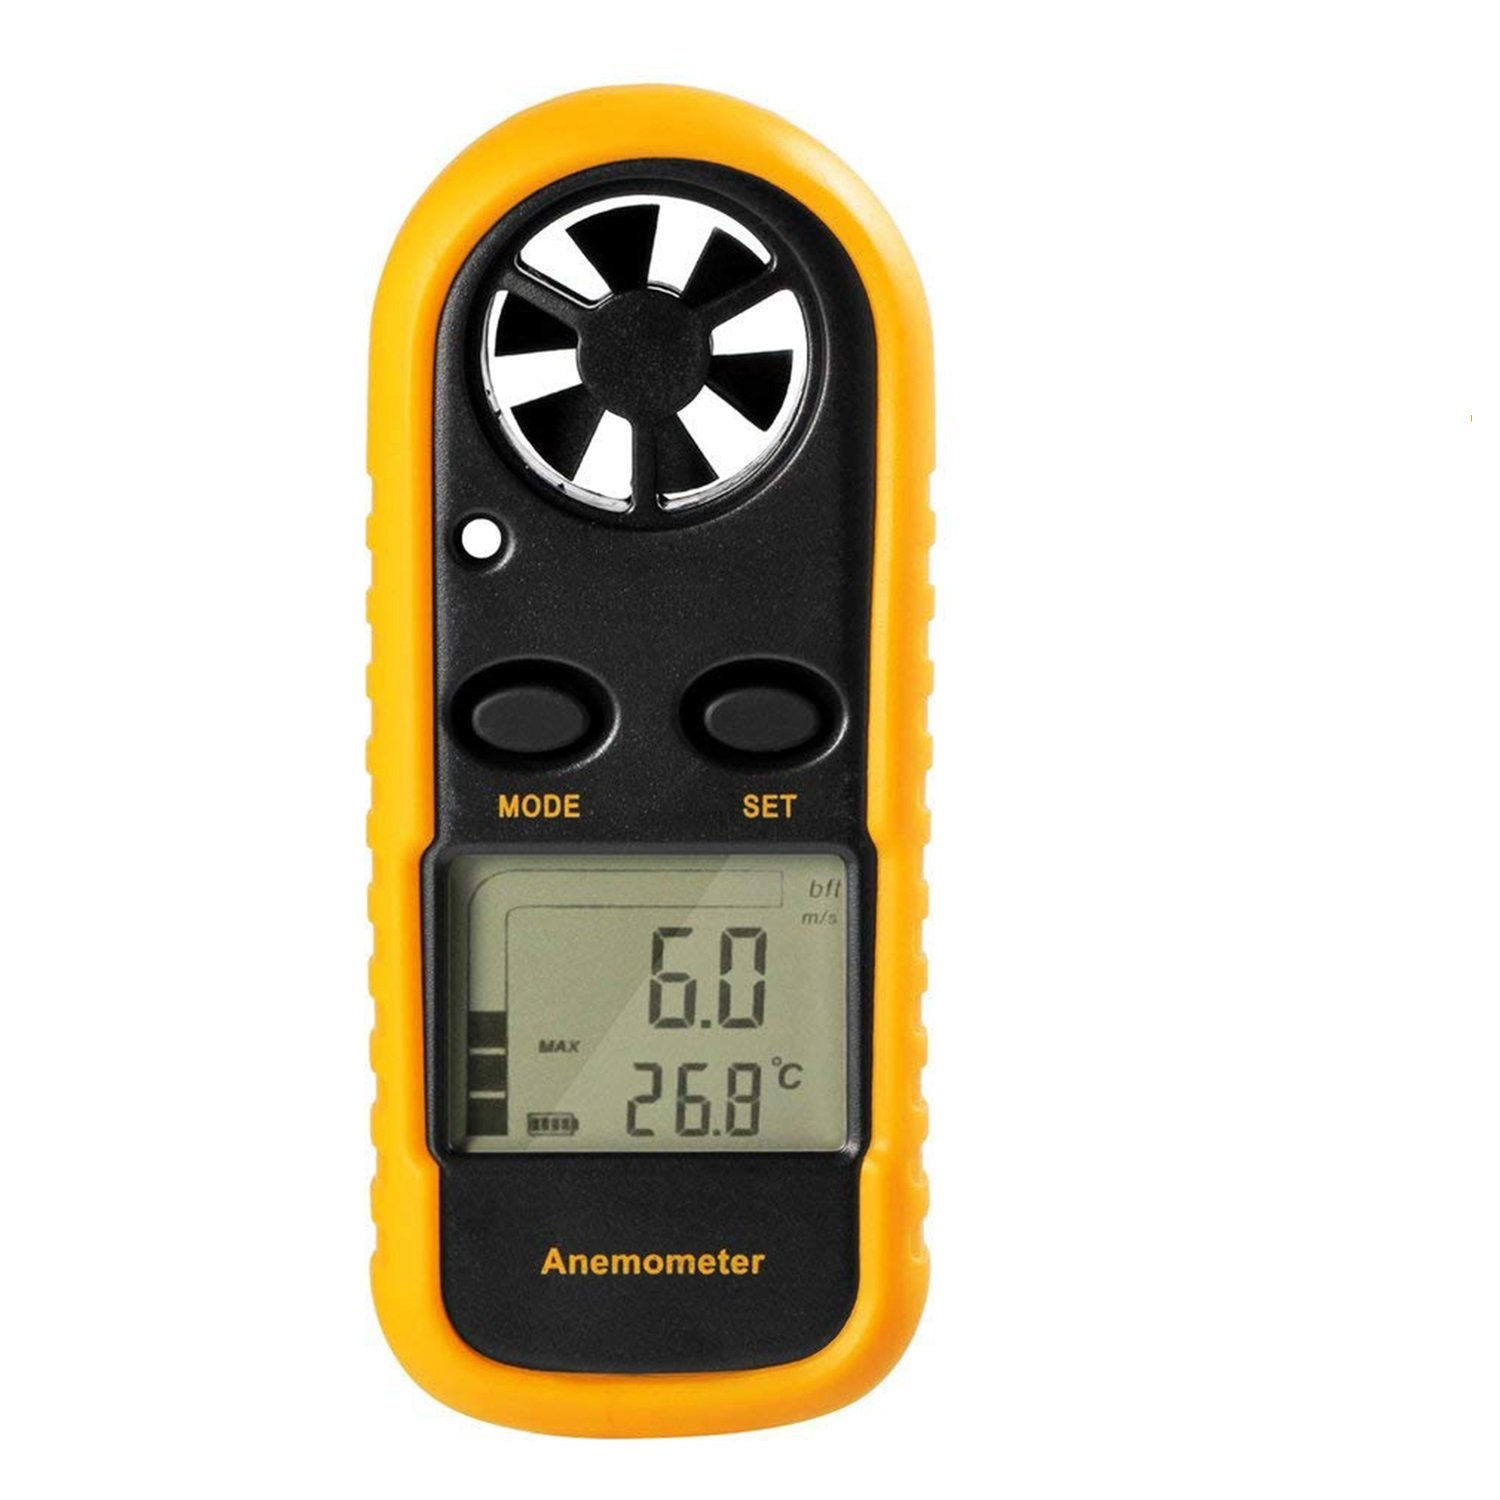 GM816 Digital Handheld Anemomete, Pocket Digital Anemometer with LCD Display for Measuring Wind Speed, Temperature and Wind Chill (Yellow)